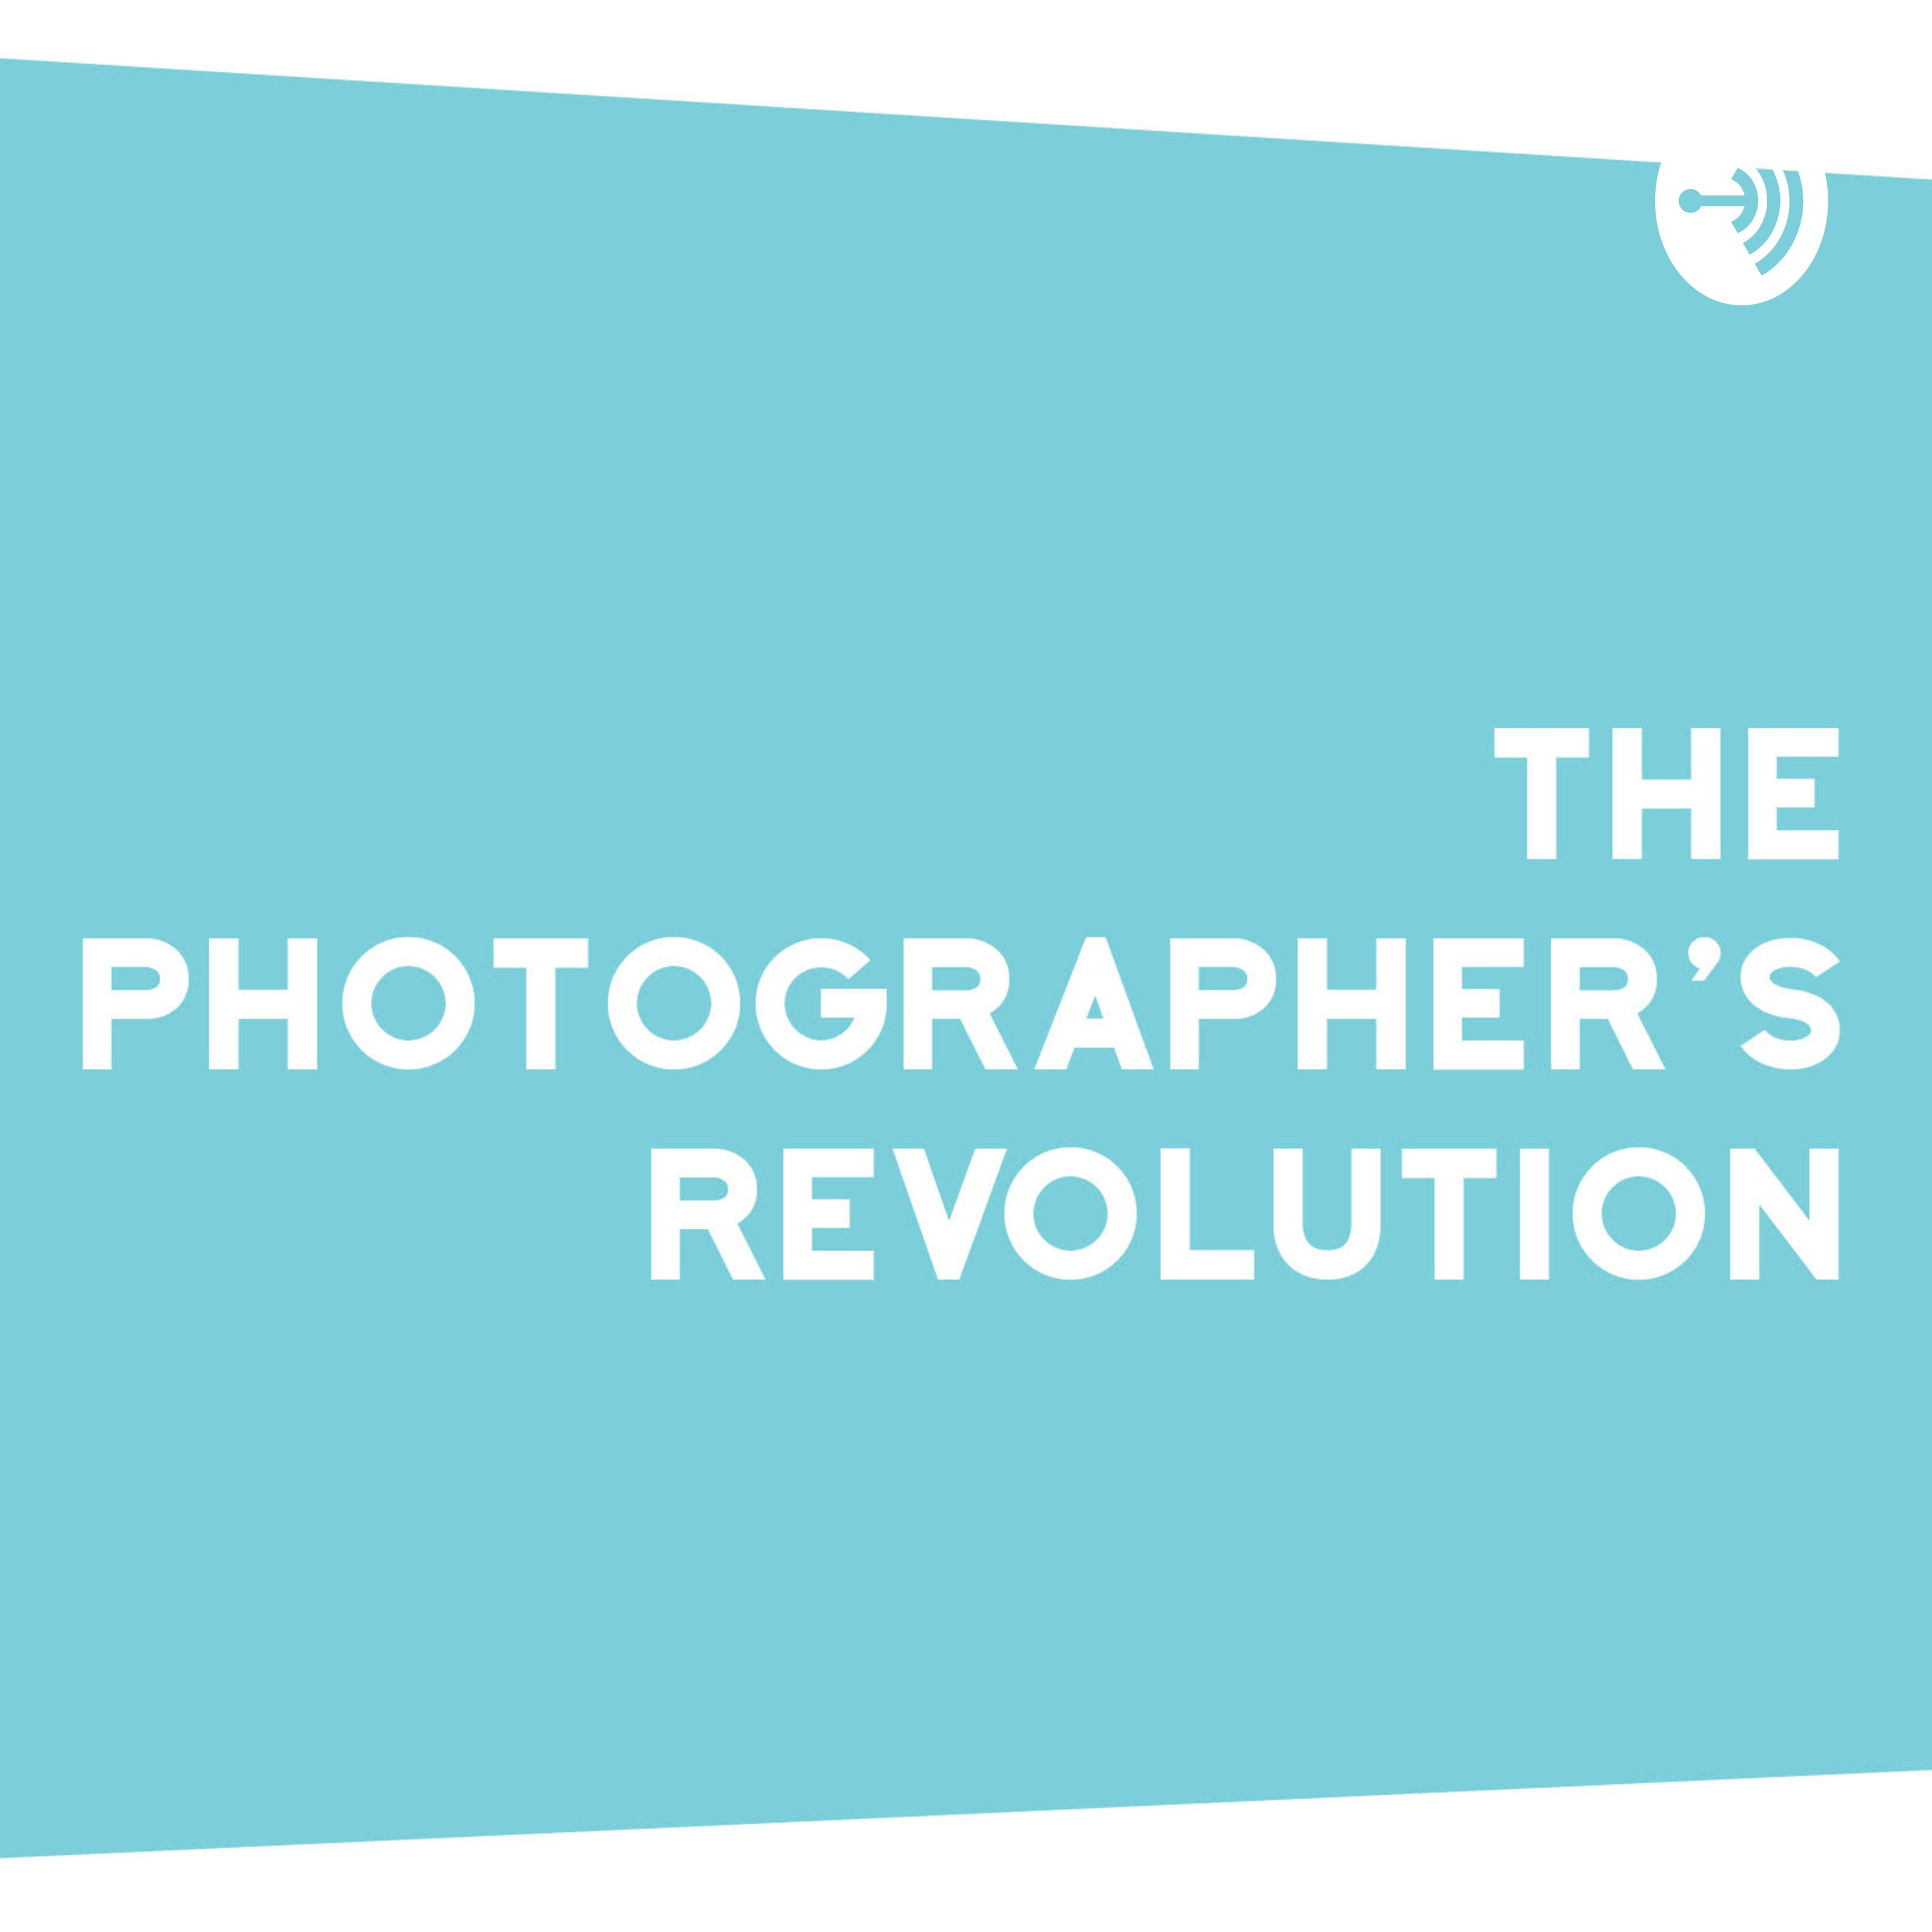 The Photographer's Revolution